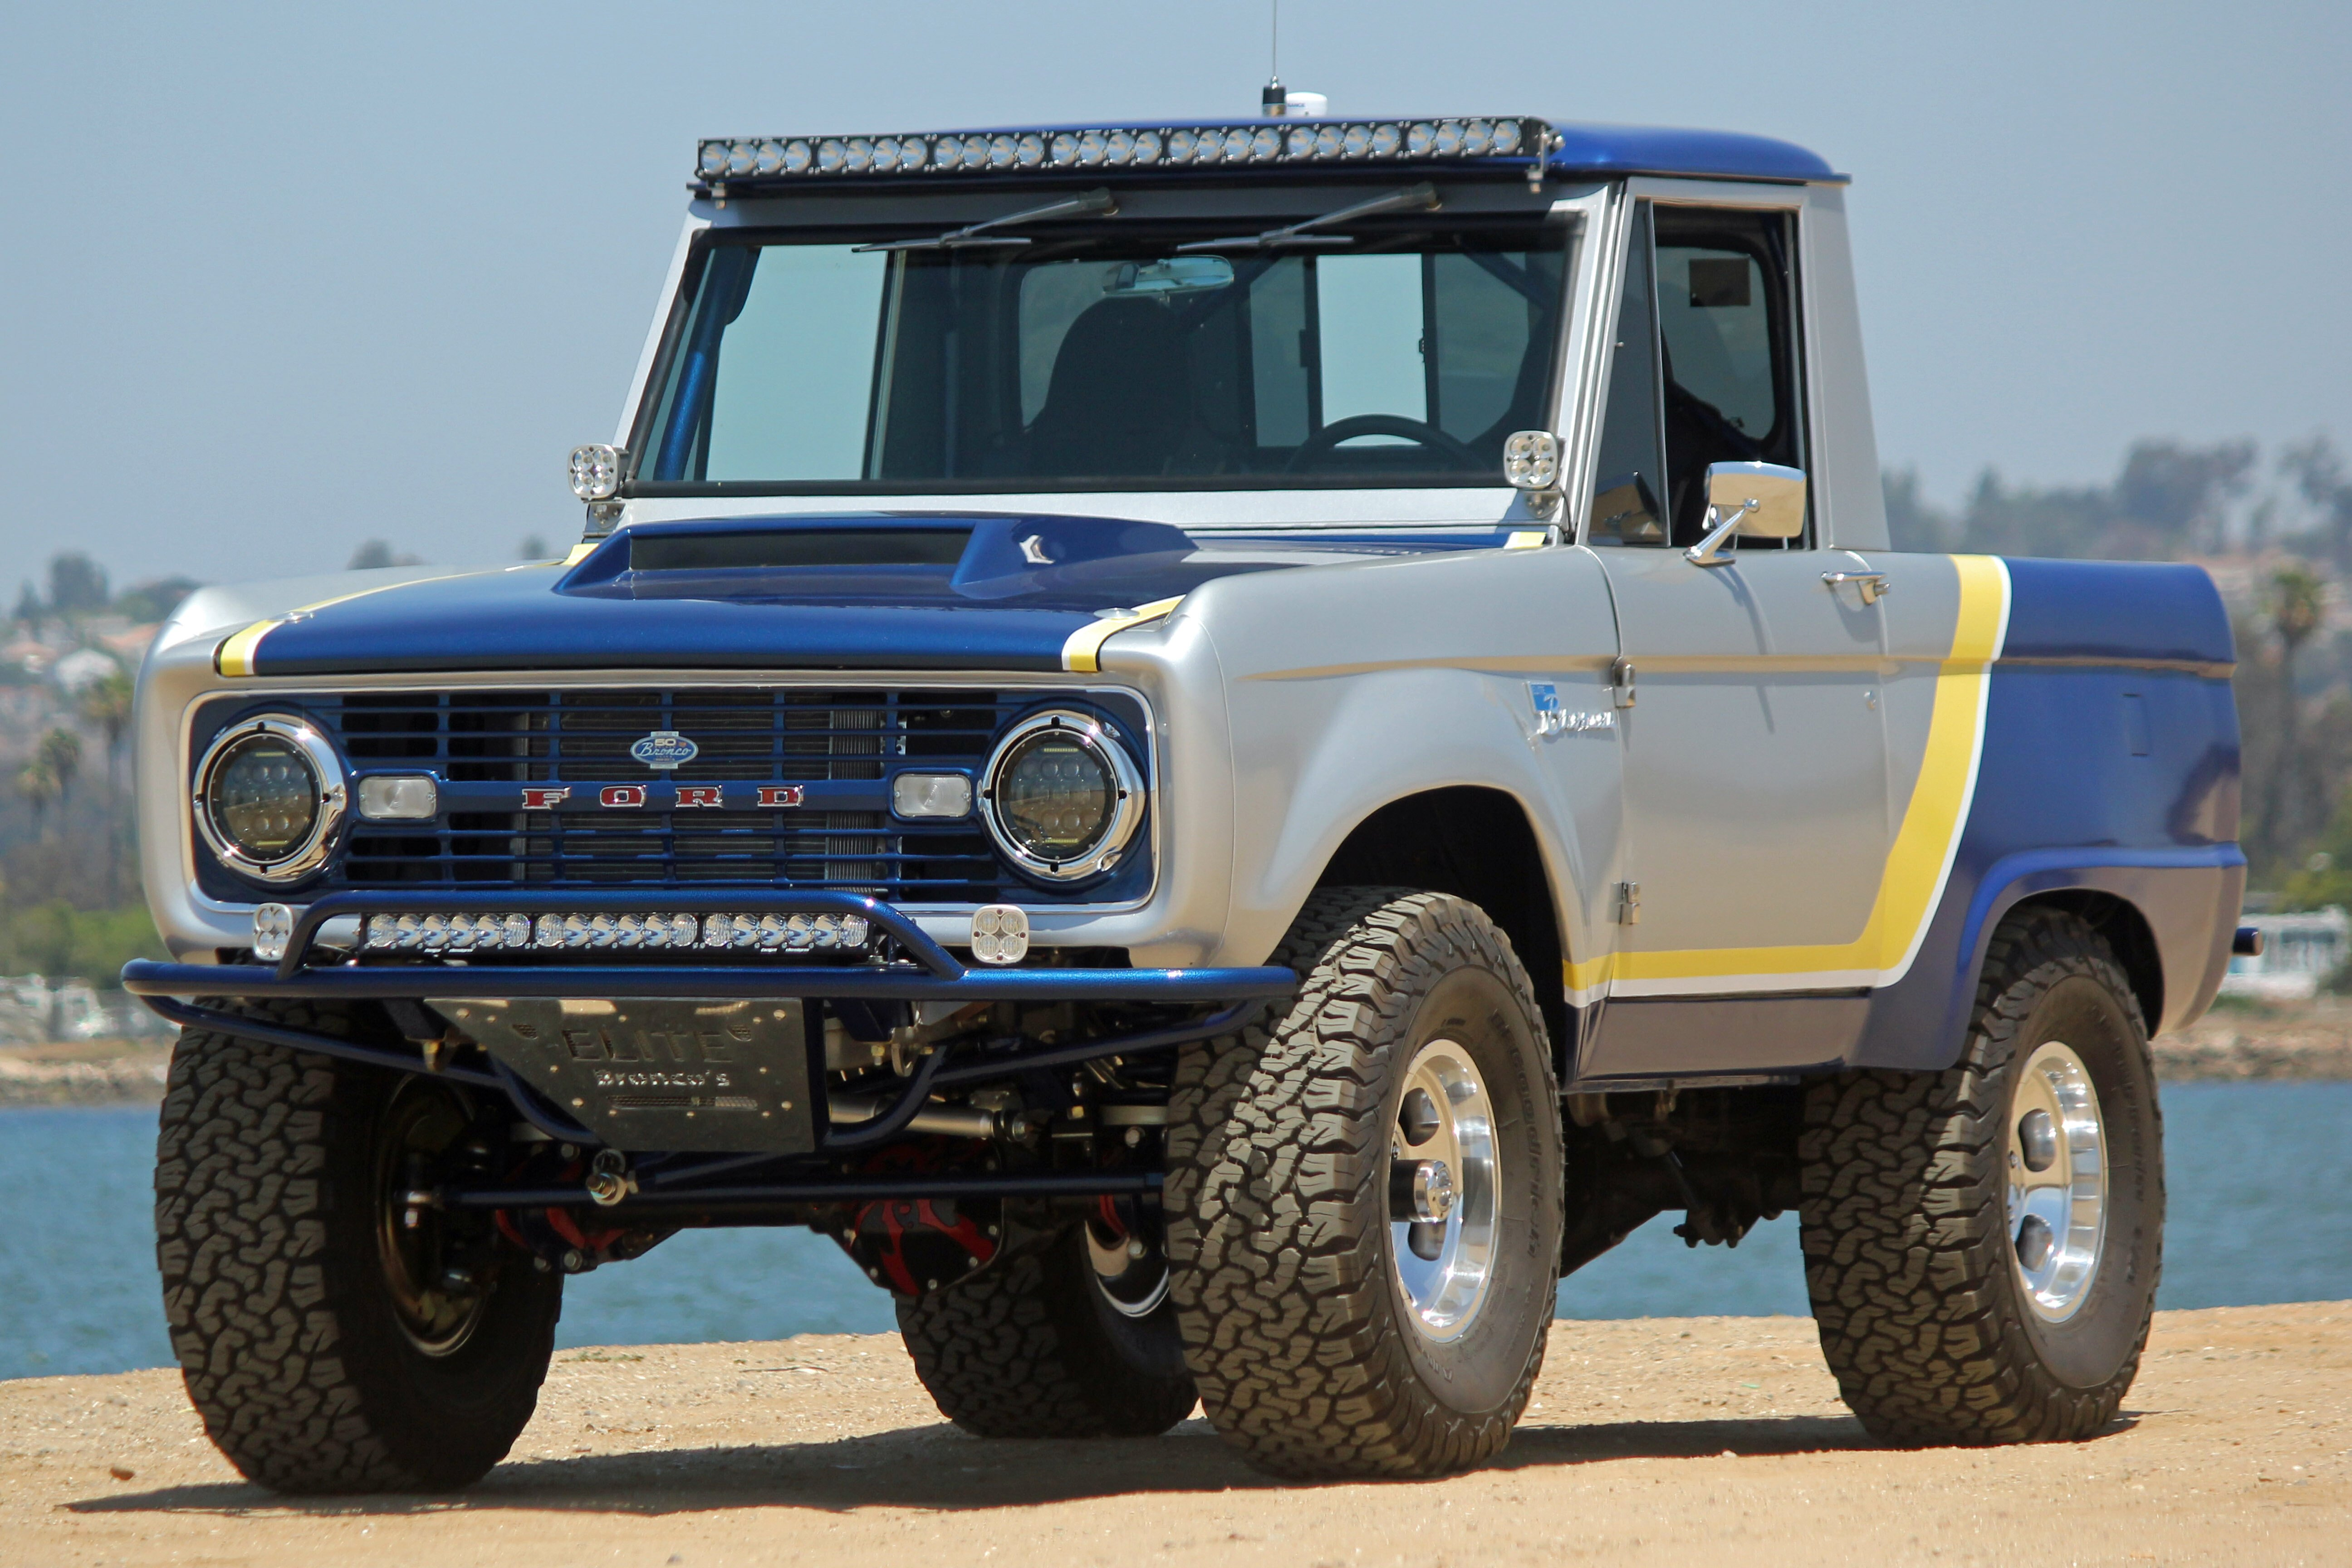 1966 Ford Bronco For Sale Near San Diego California 92113 Classics On Autotrader